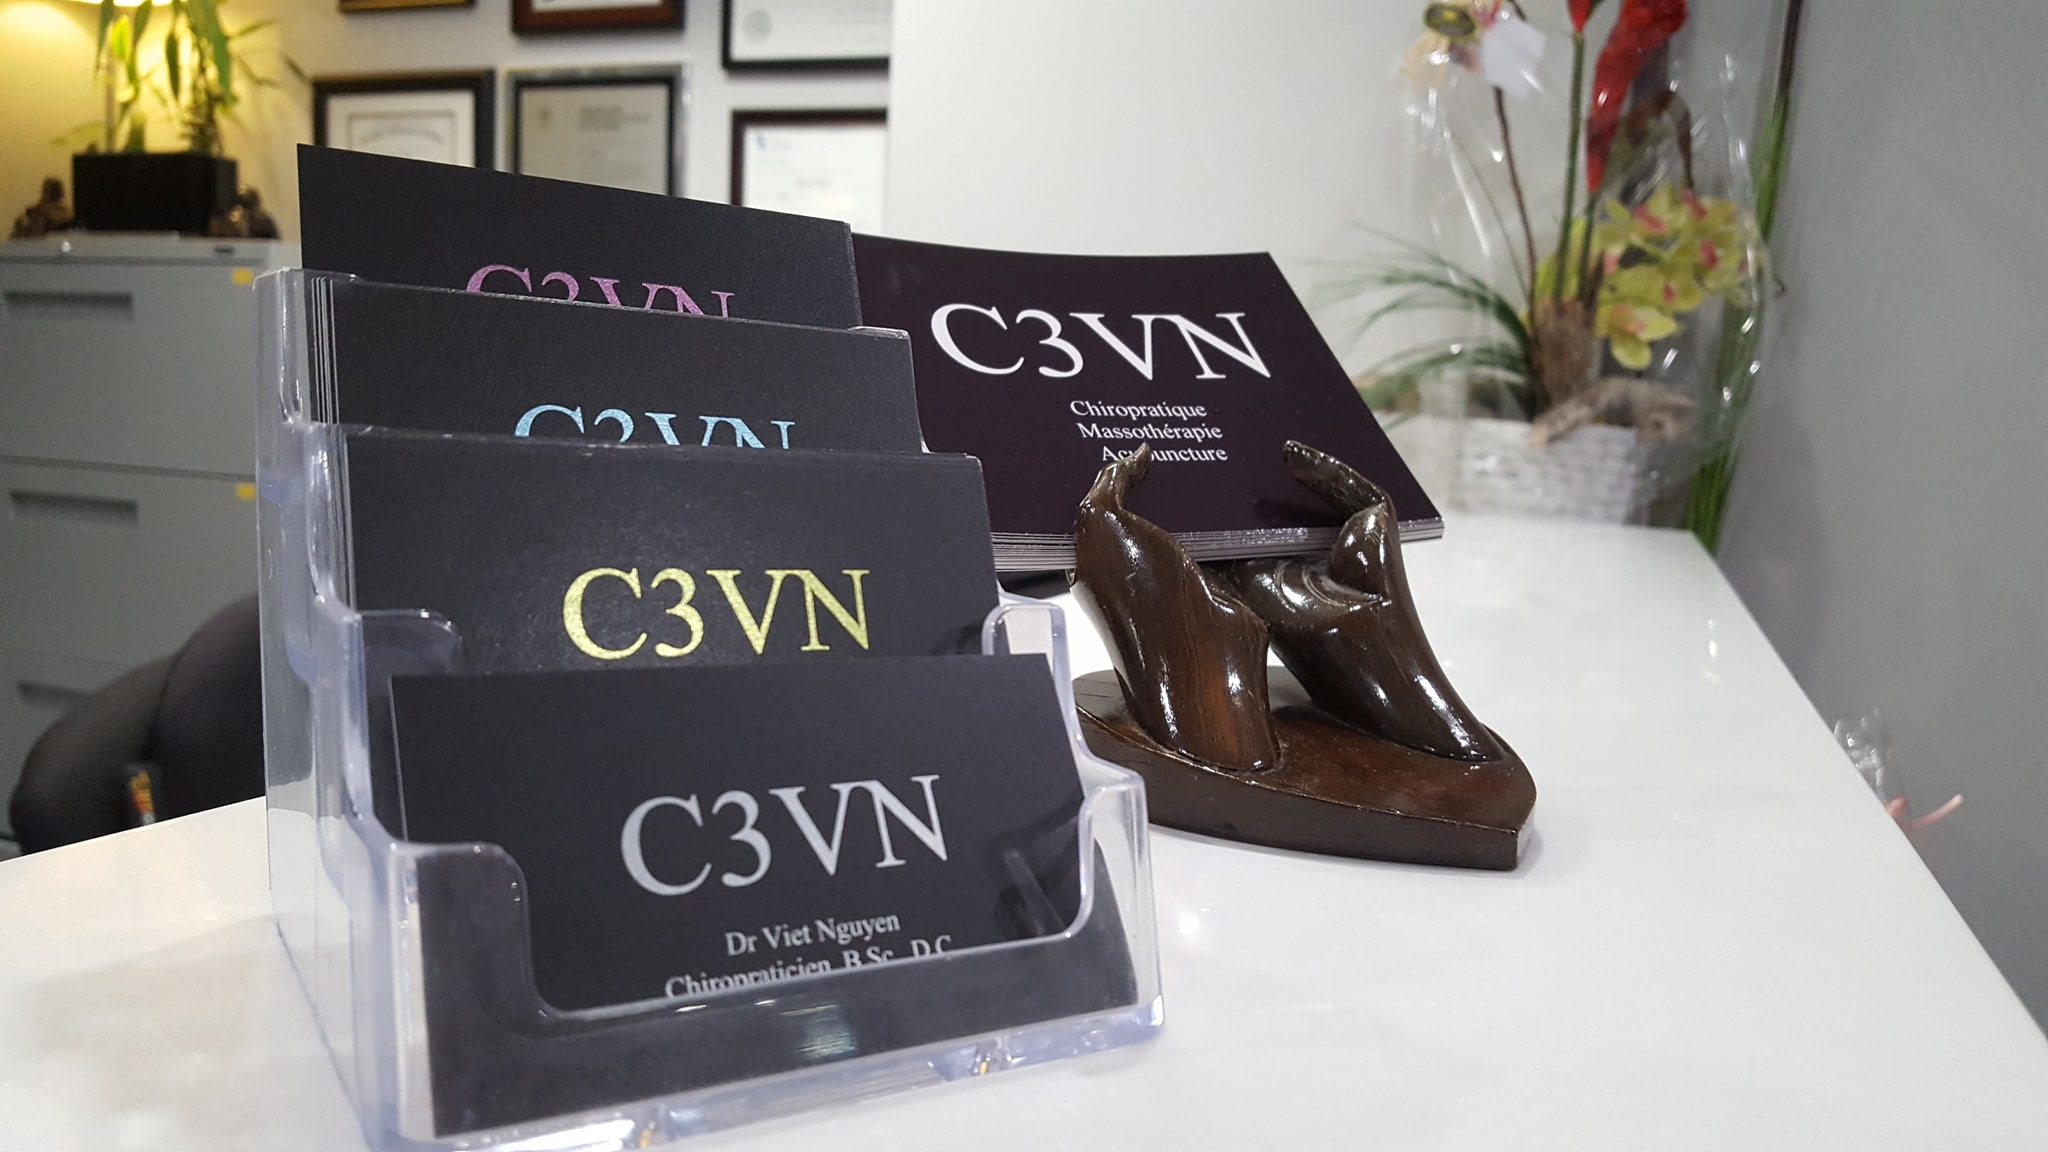 C3VN business cards